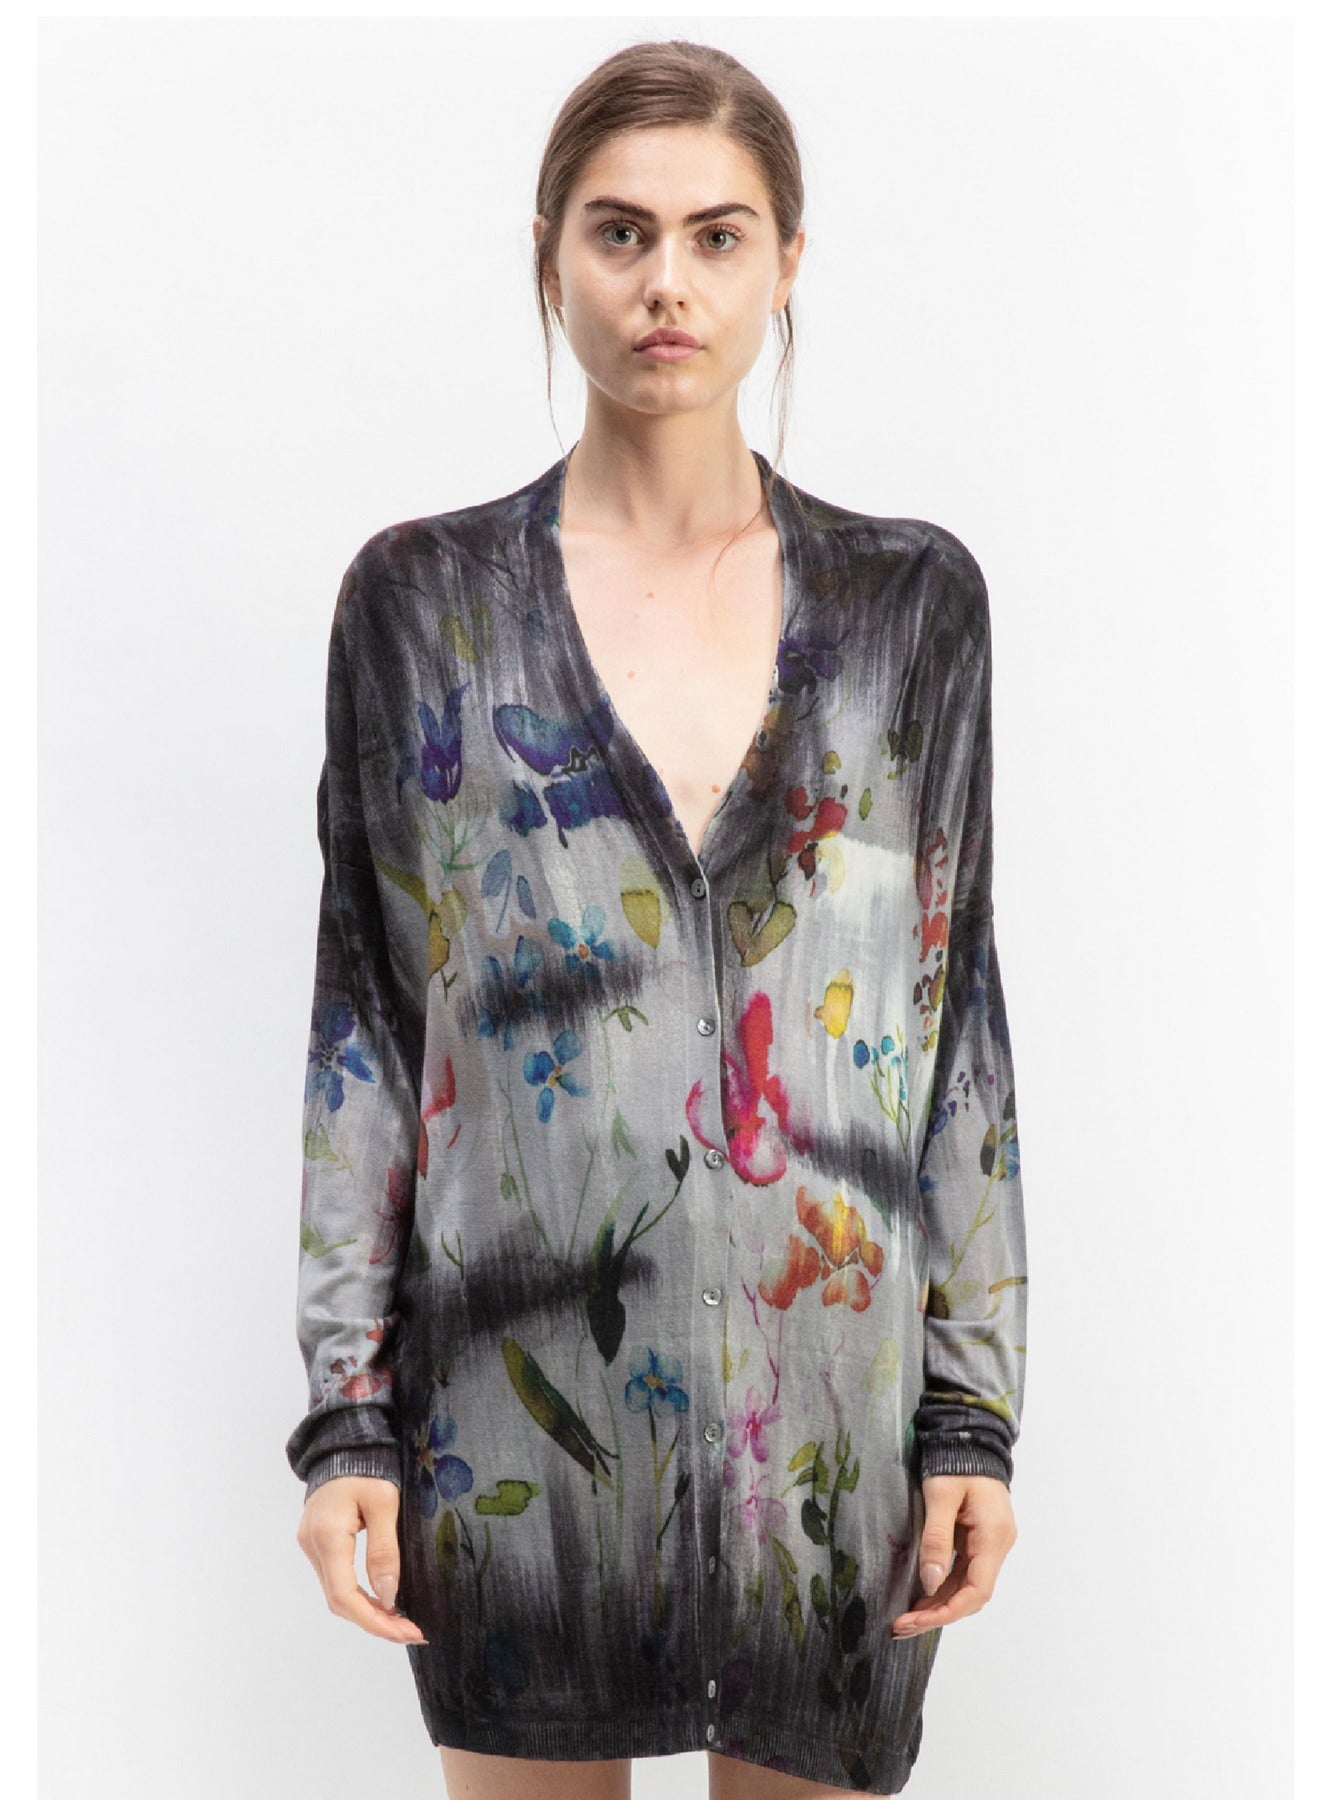 Flower print with brushes v neck long cardigan with back tapestry   100% silk